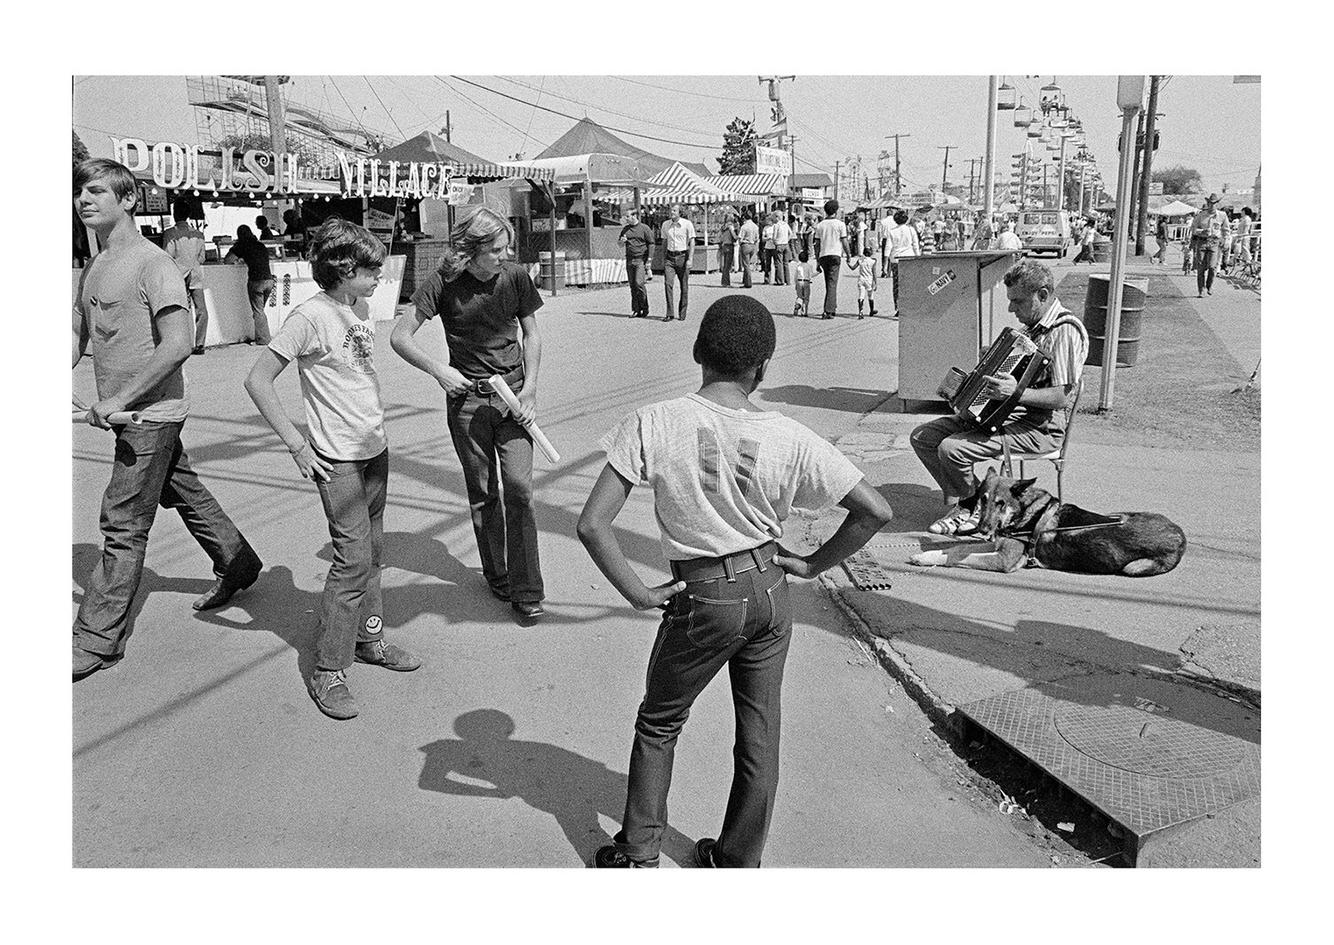 A blind Man Performing While Three Young Boys Look On, Detroit (Michigan State Fairgrounds) 1972